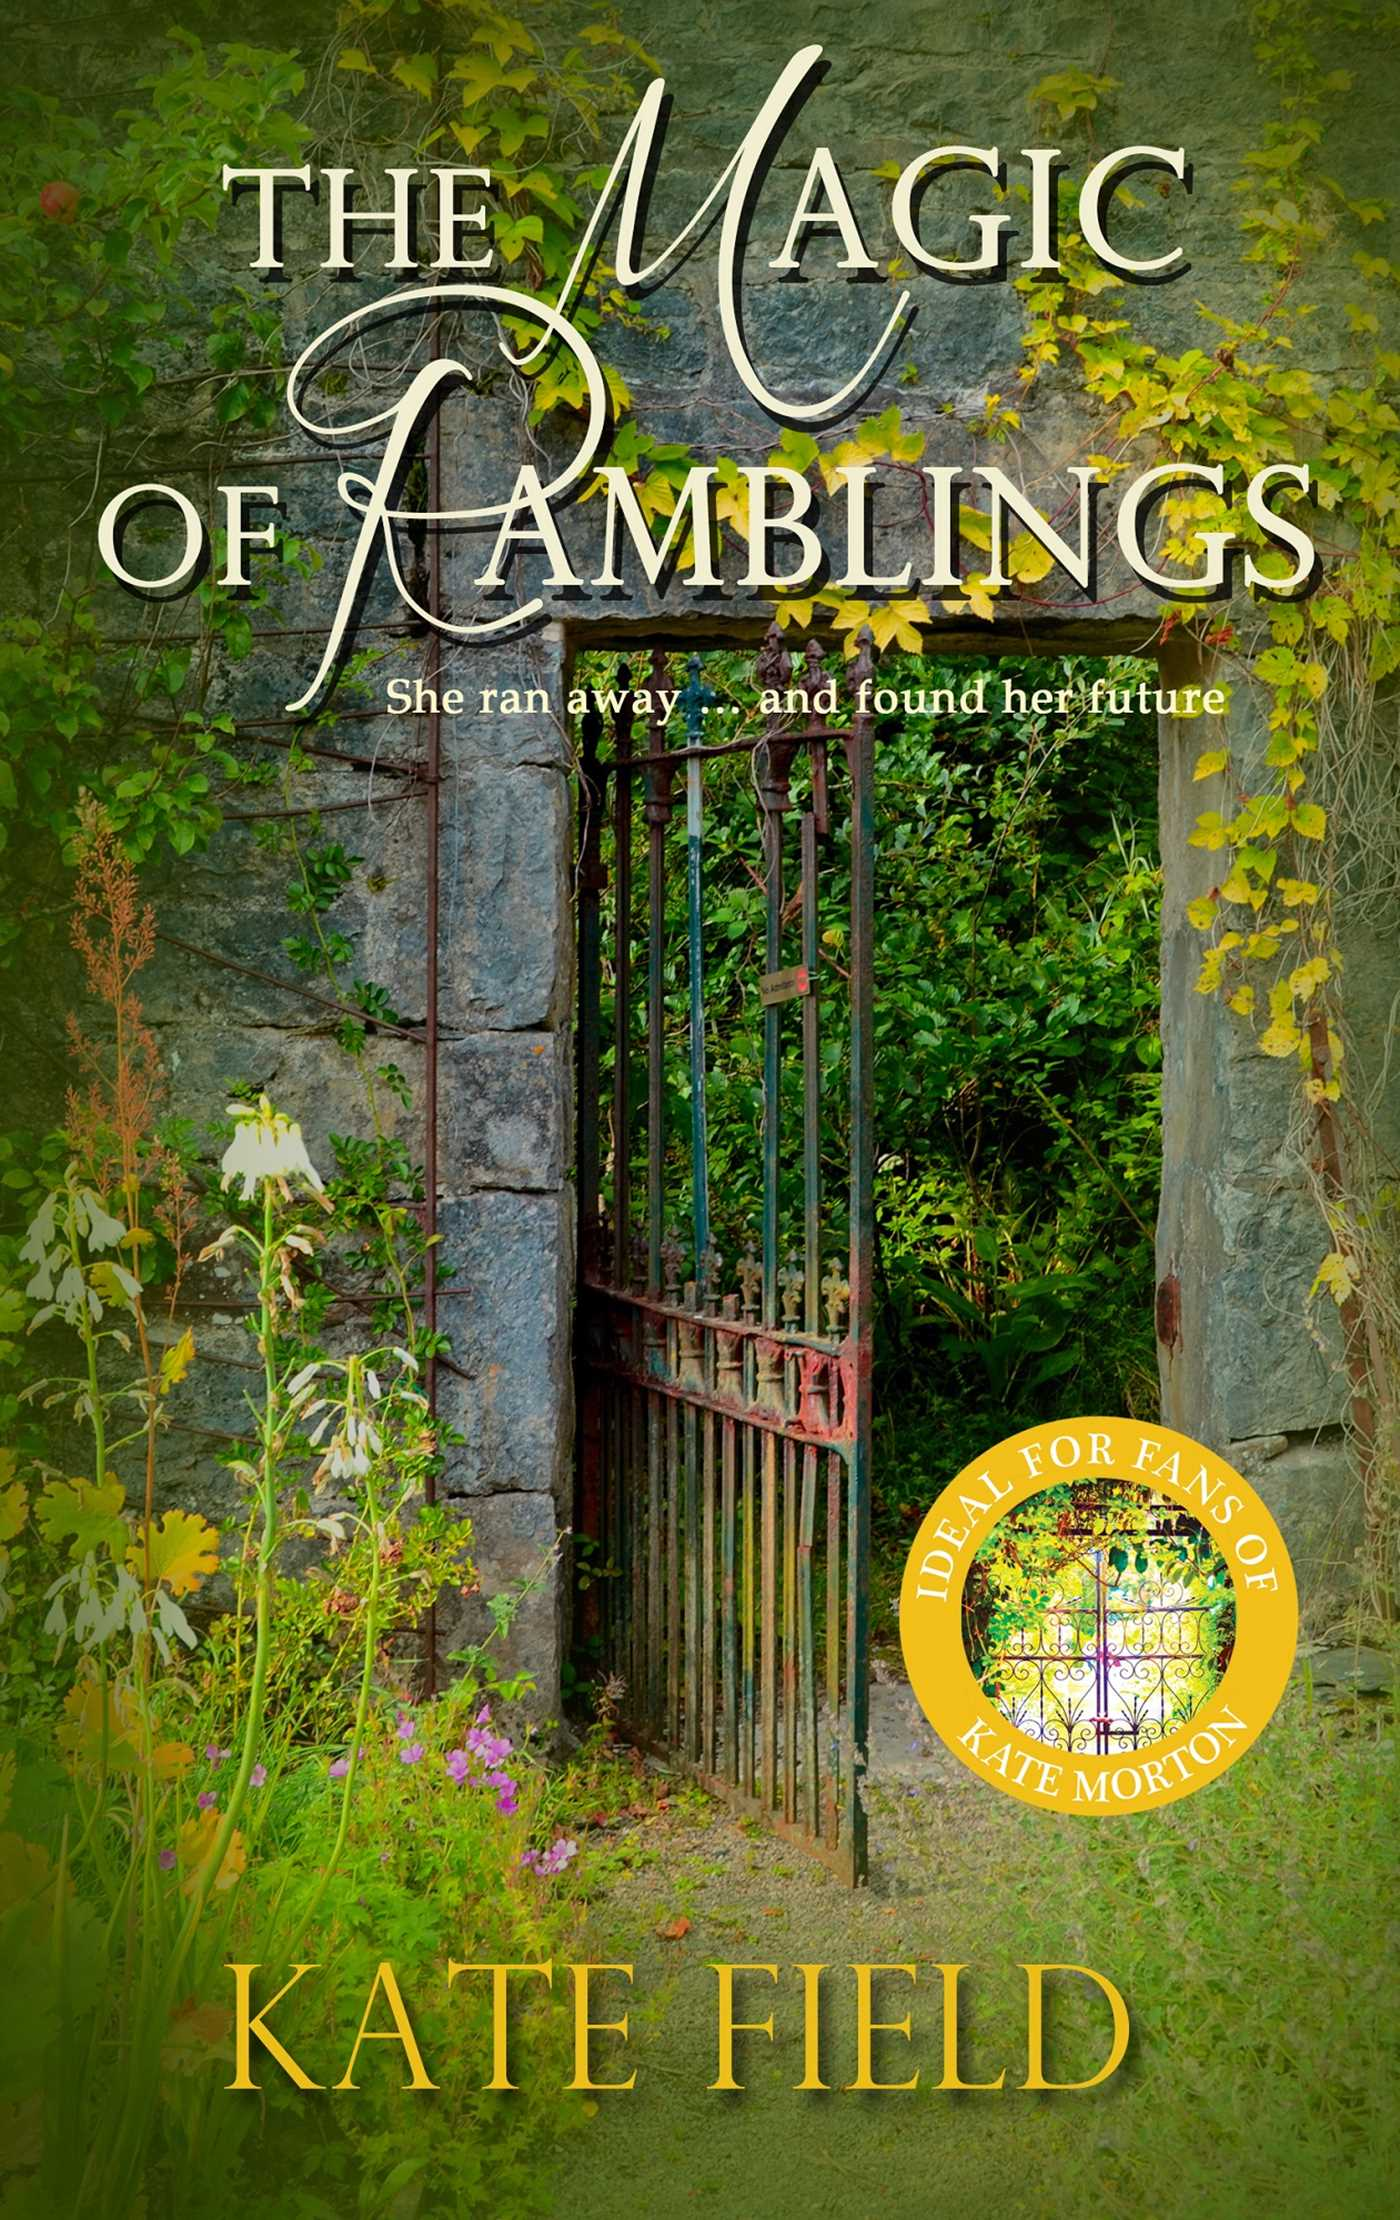 The Magic of Ramblings eBook by Kate Field   Official Publisher Page